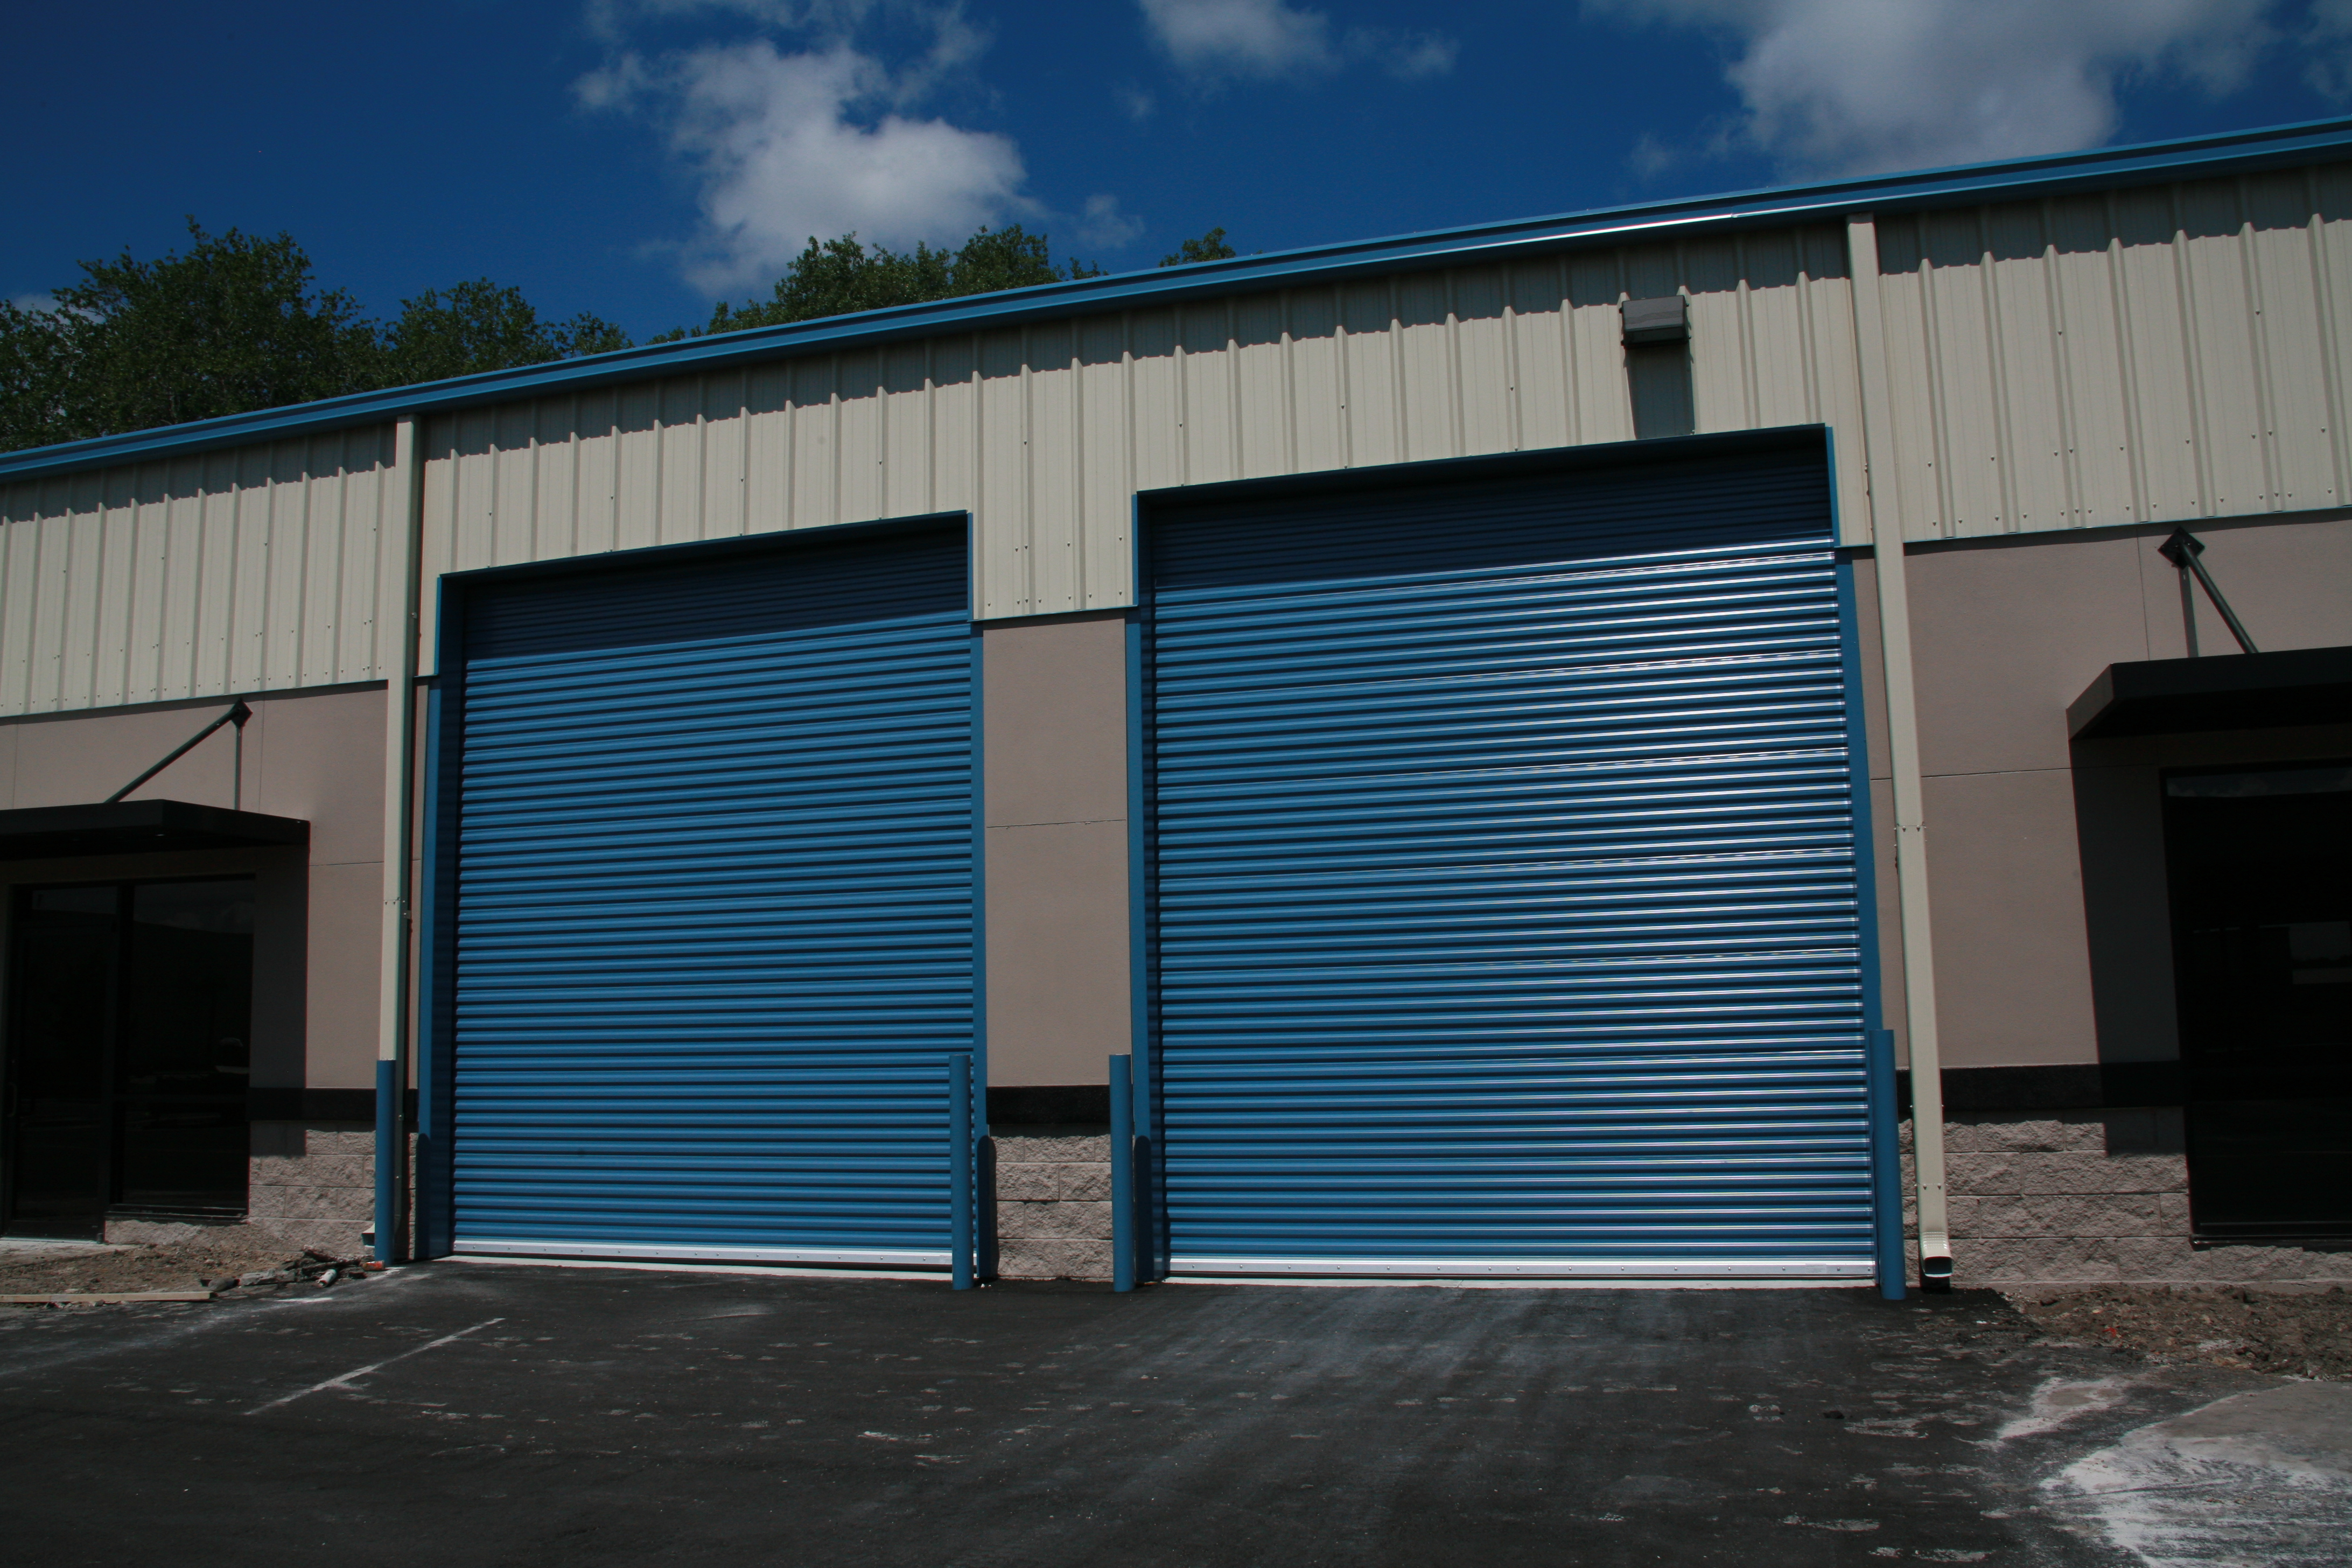 Two Blue Commercial Roll-up Doors Installed on Building